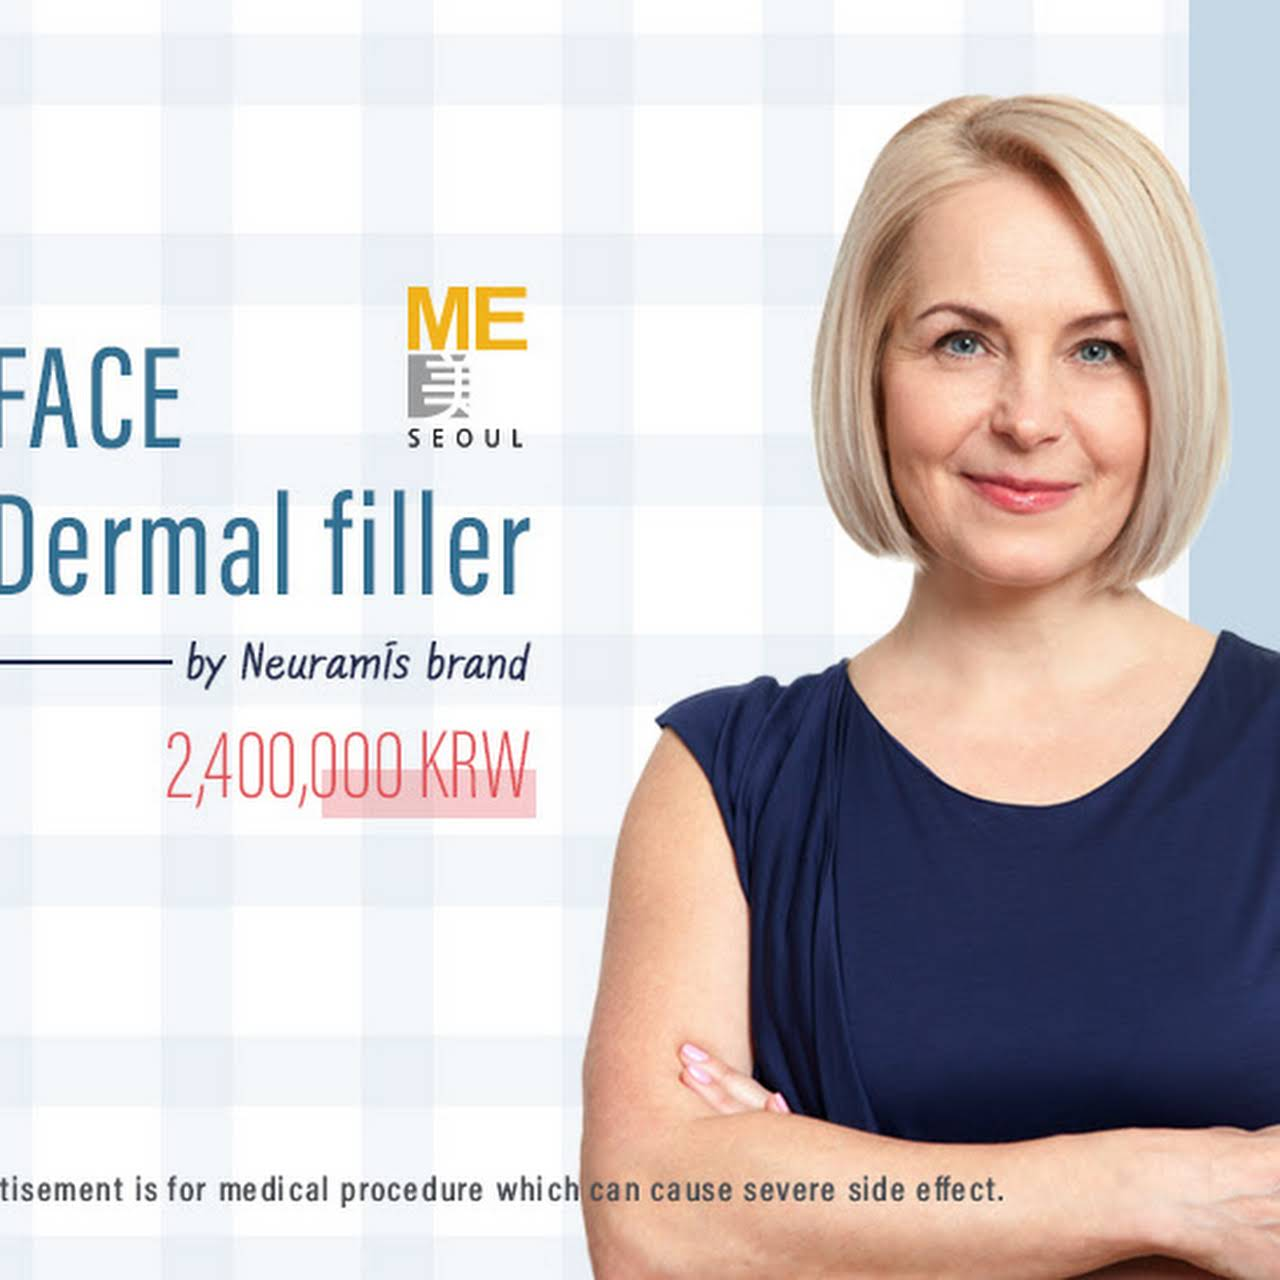 ME CLINIC SEOUL - Approved foreigner specialized plastic surgery and